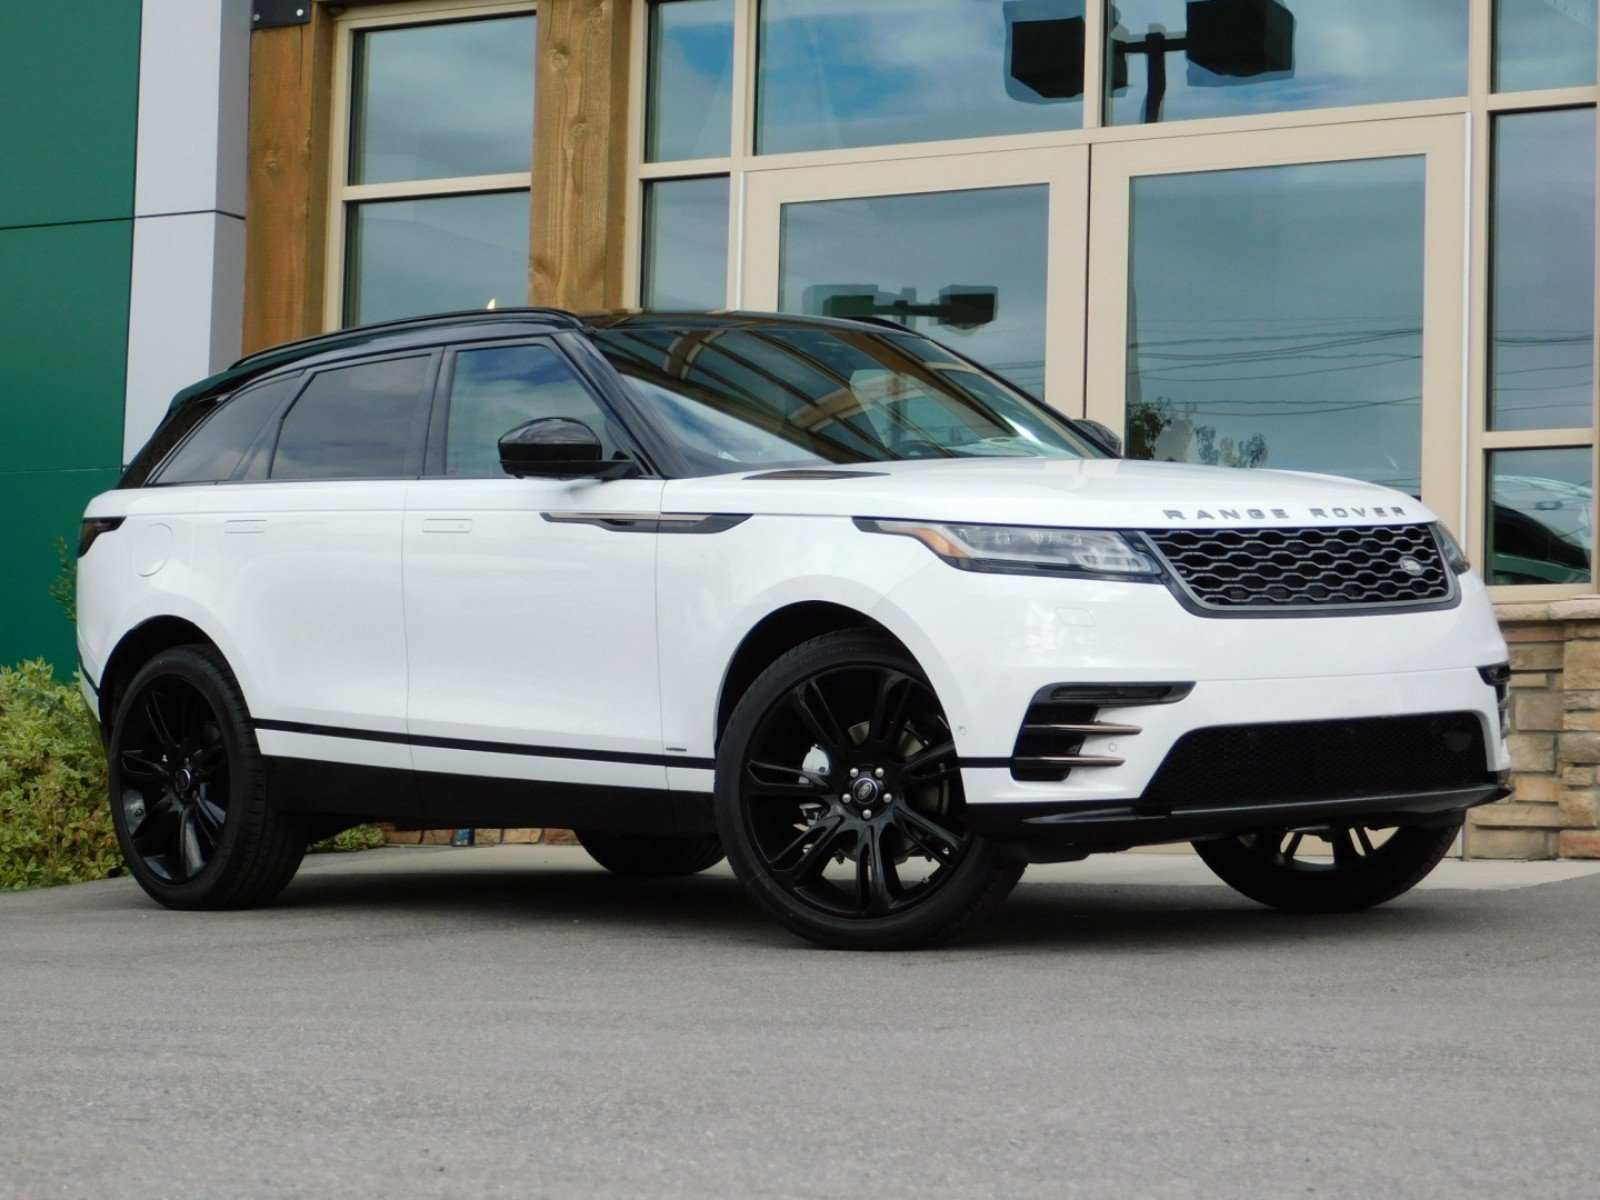 85 Best Review 2019 Land Rover Specs for 2019 Land Rover